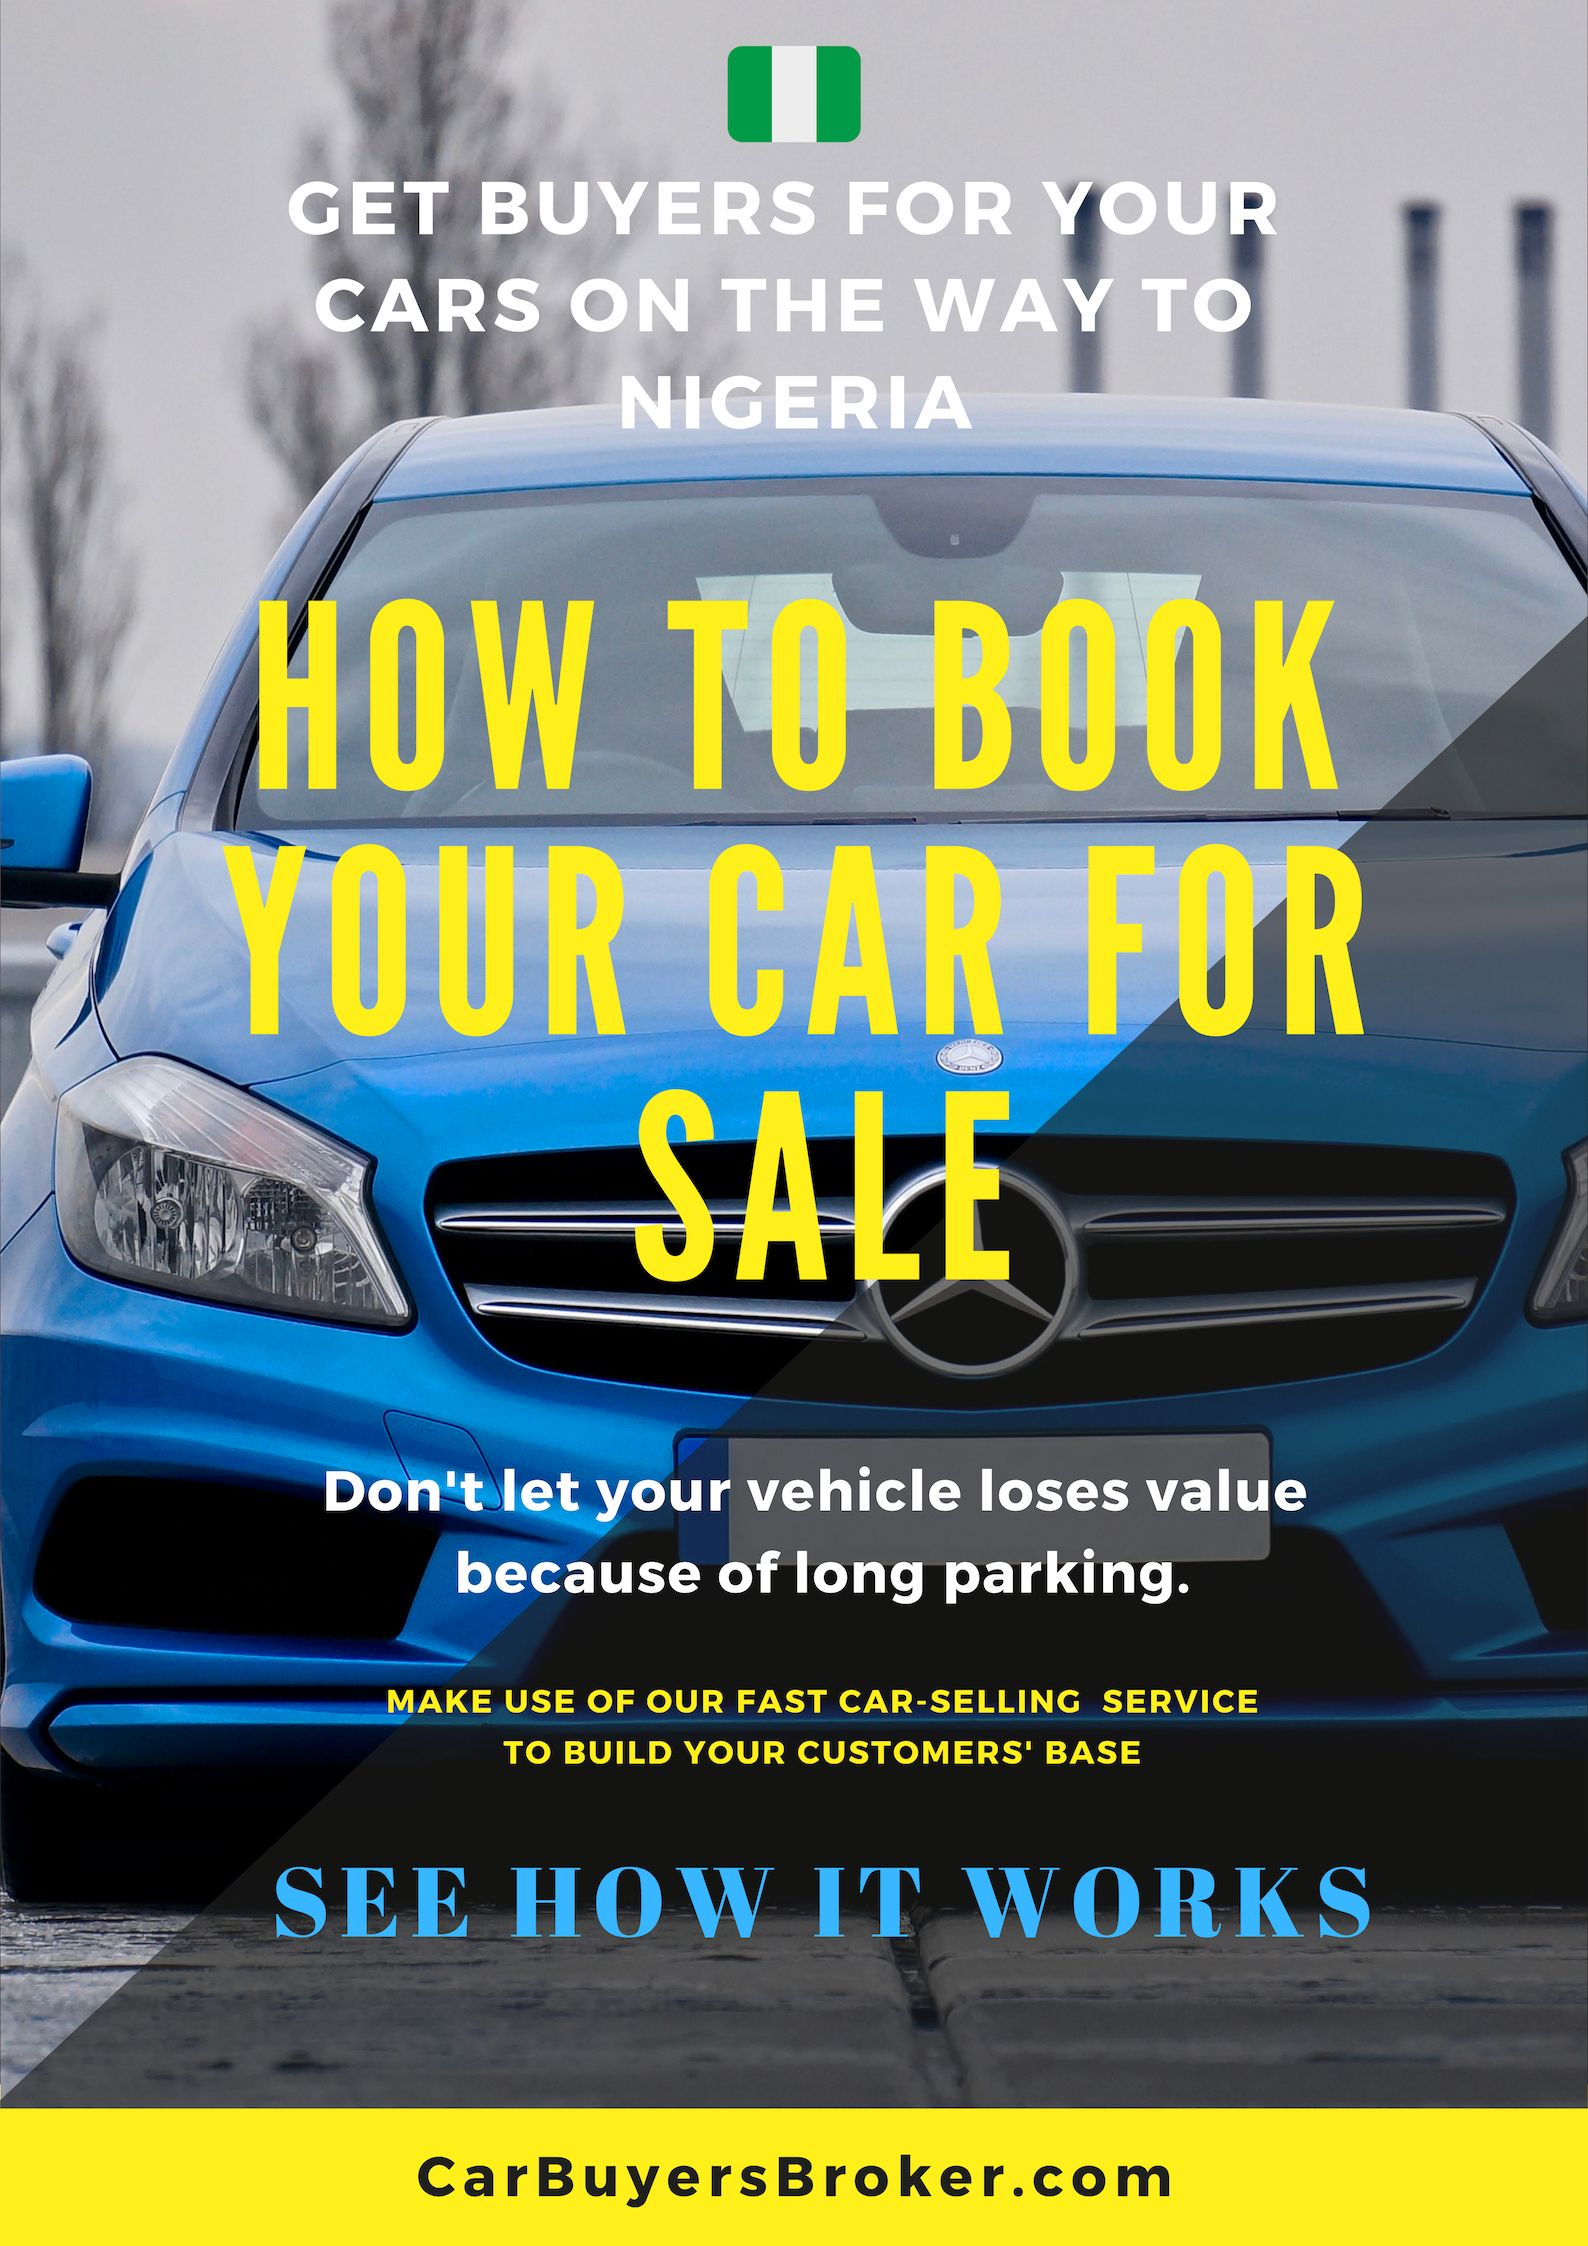 Pin By Car Buyers Broker On Cbb Autos Tips Sell Car Cars For Sale Fast Cars